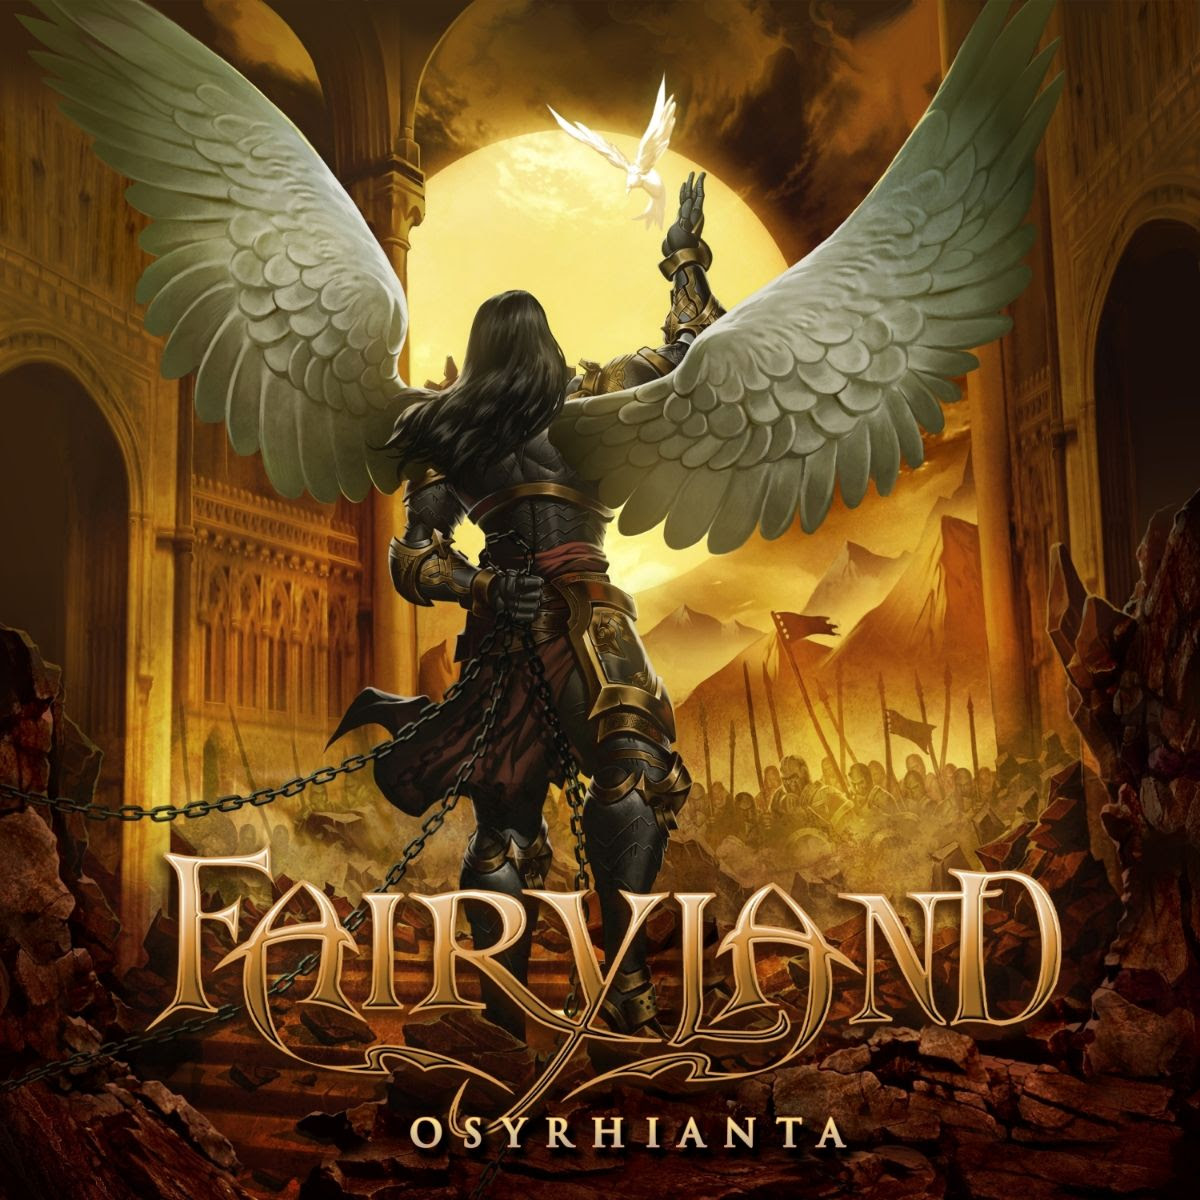 Fairyland - Osyrhianta - Cover